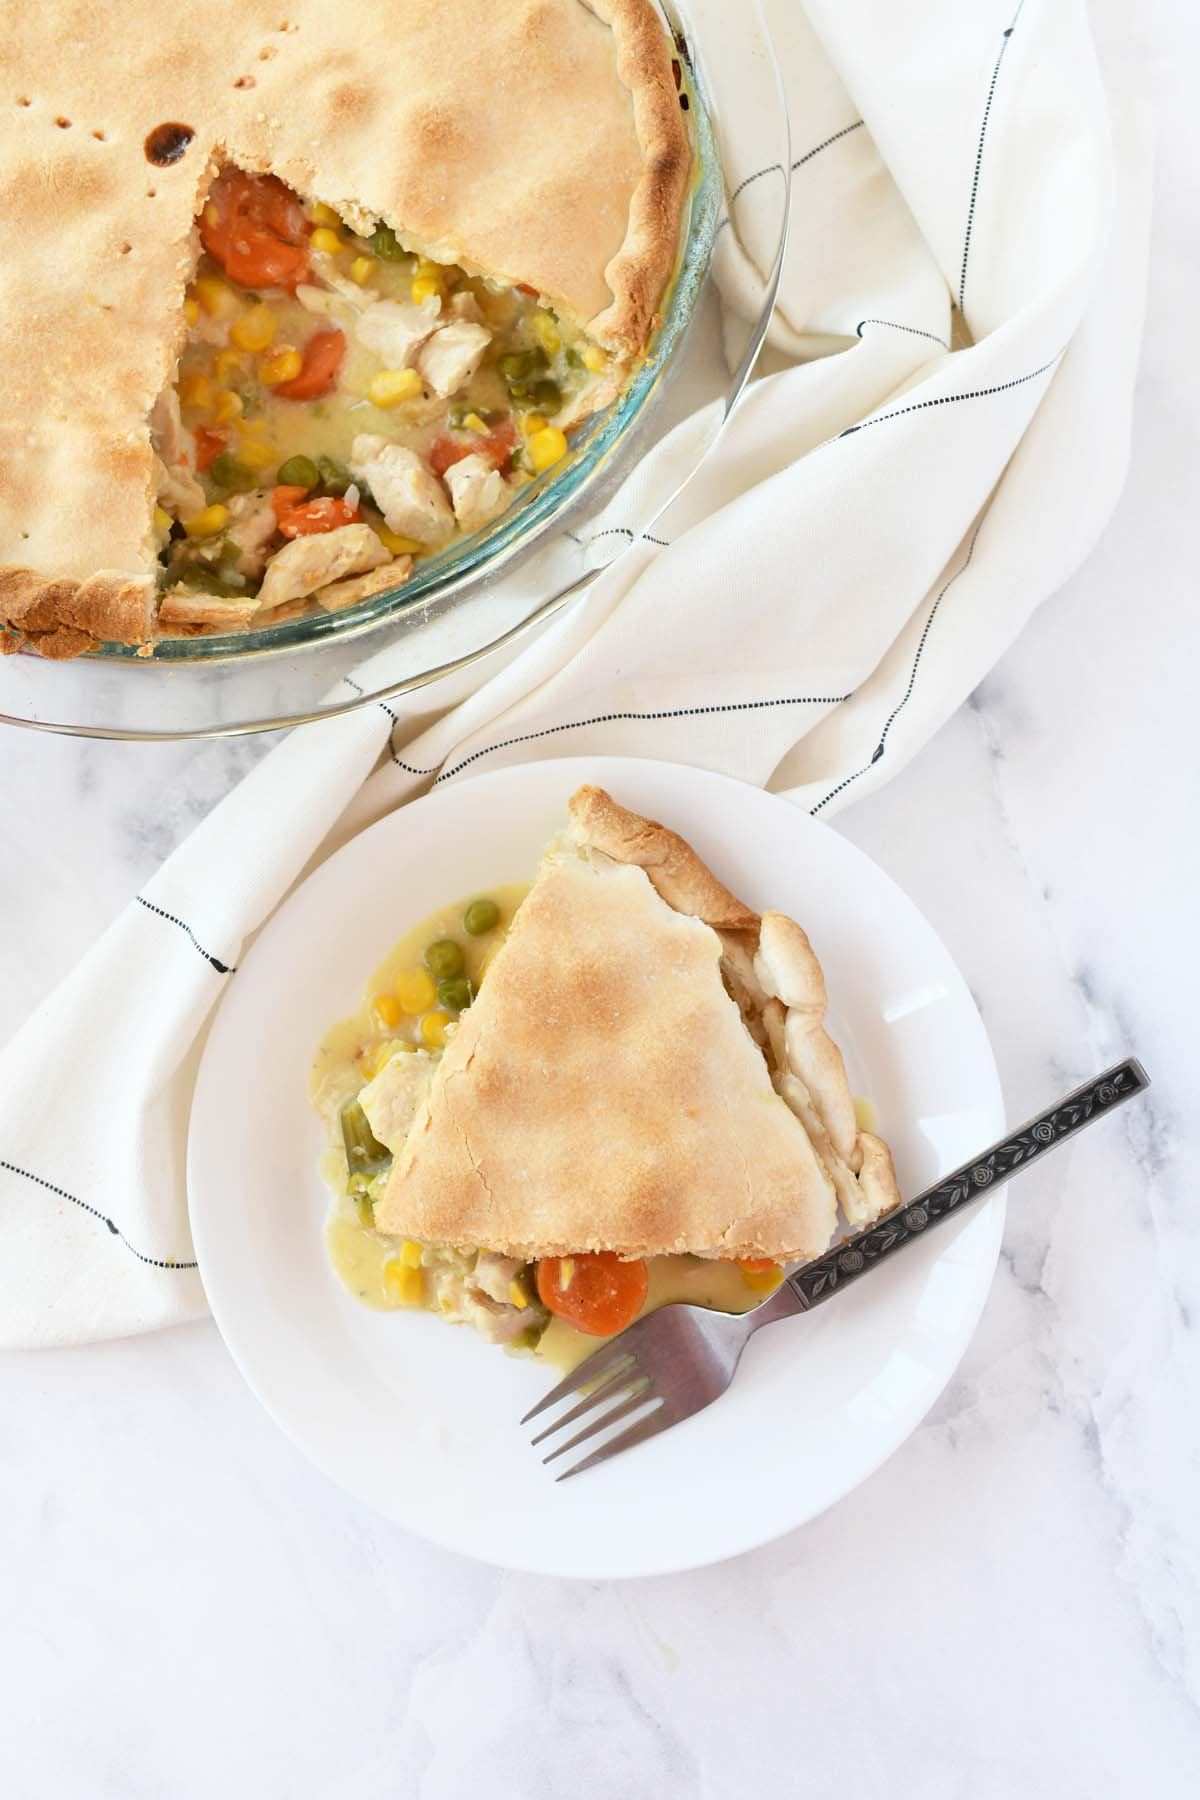 A slice of chicken pot pie on a small white dish.